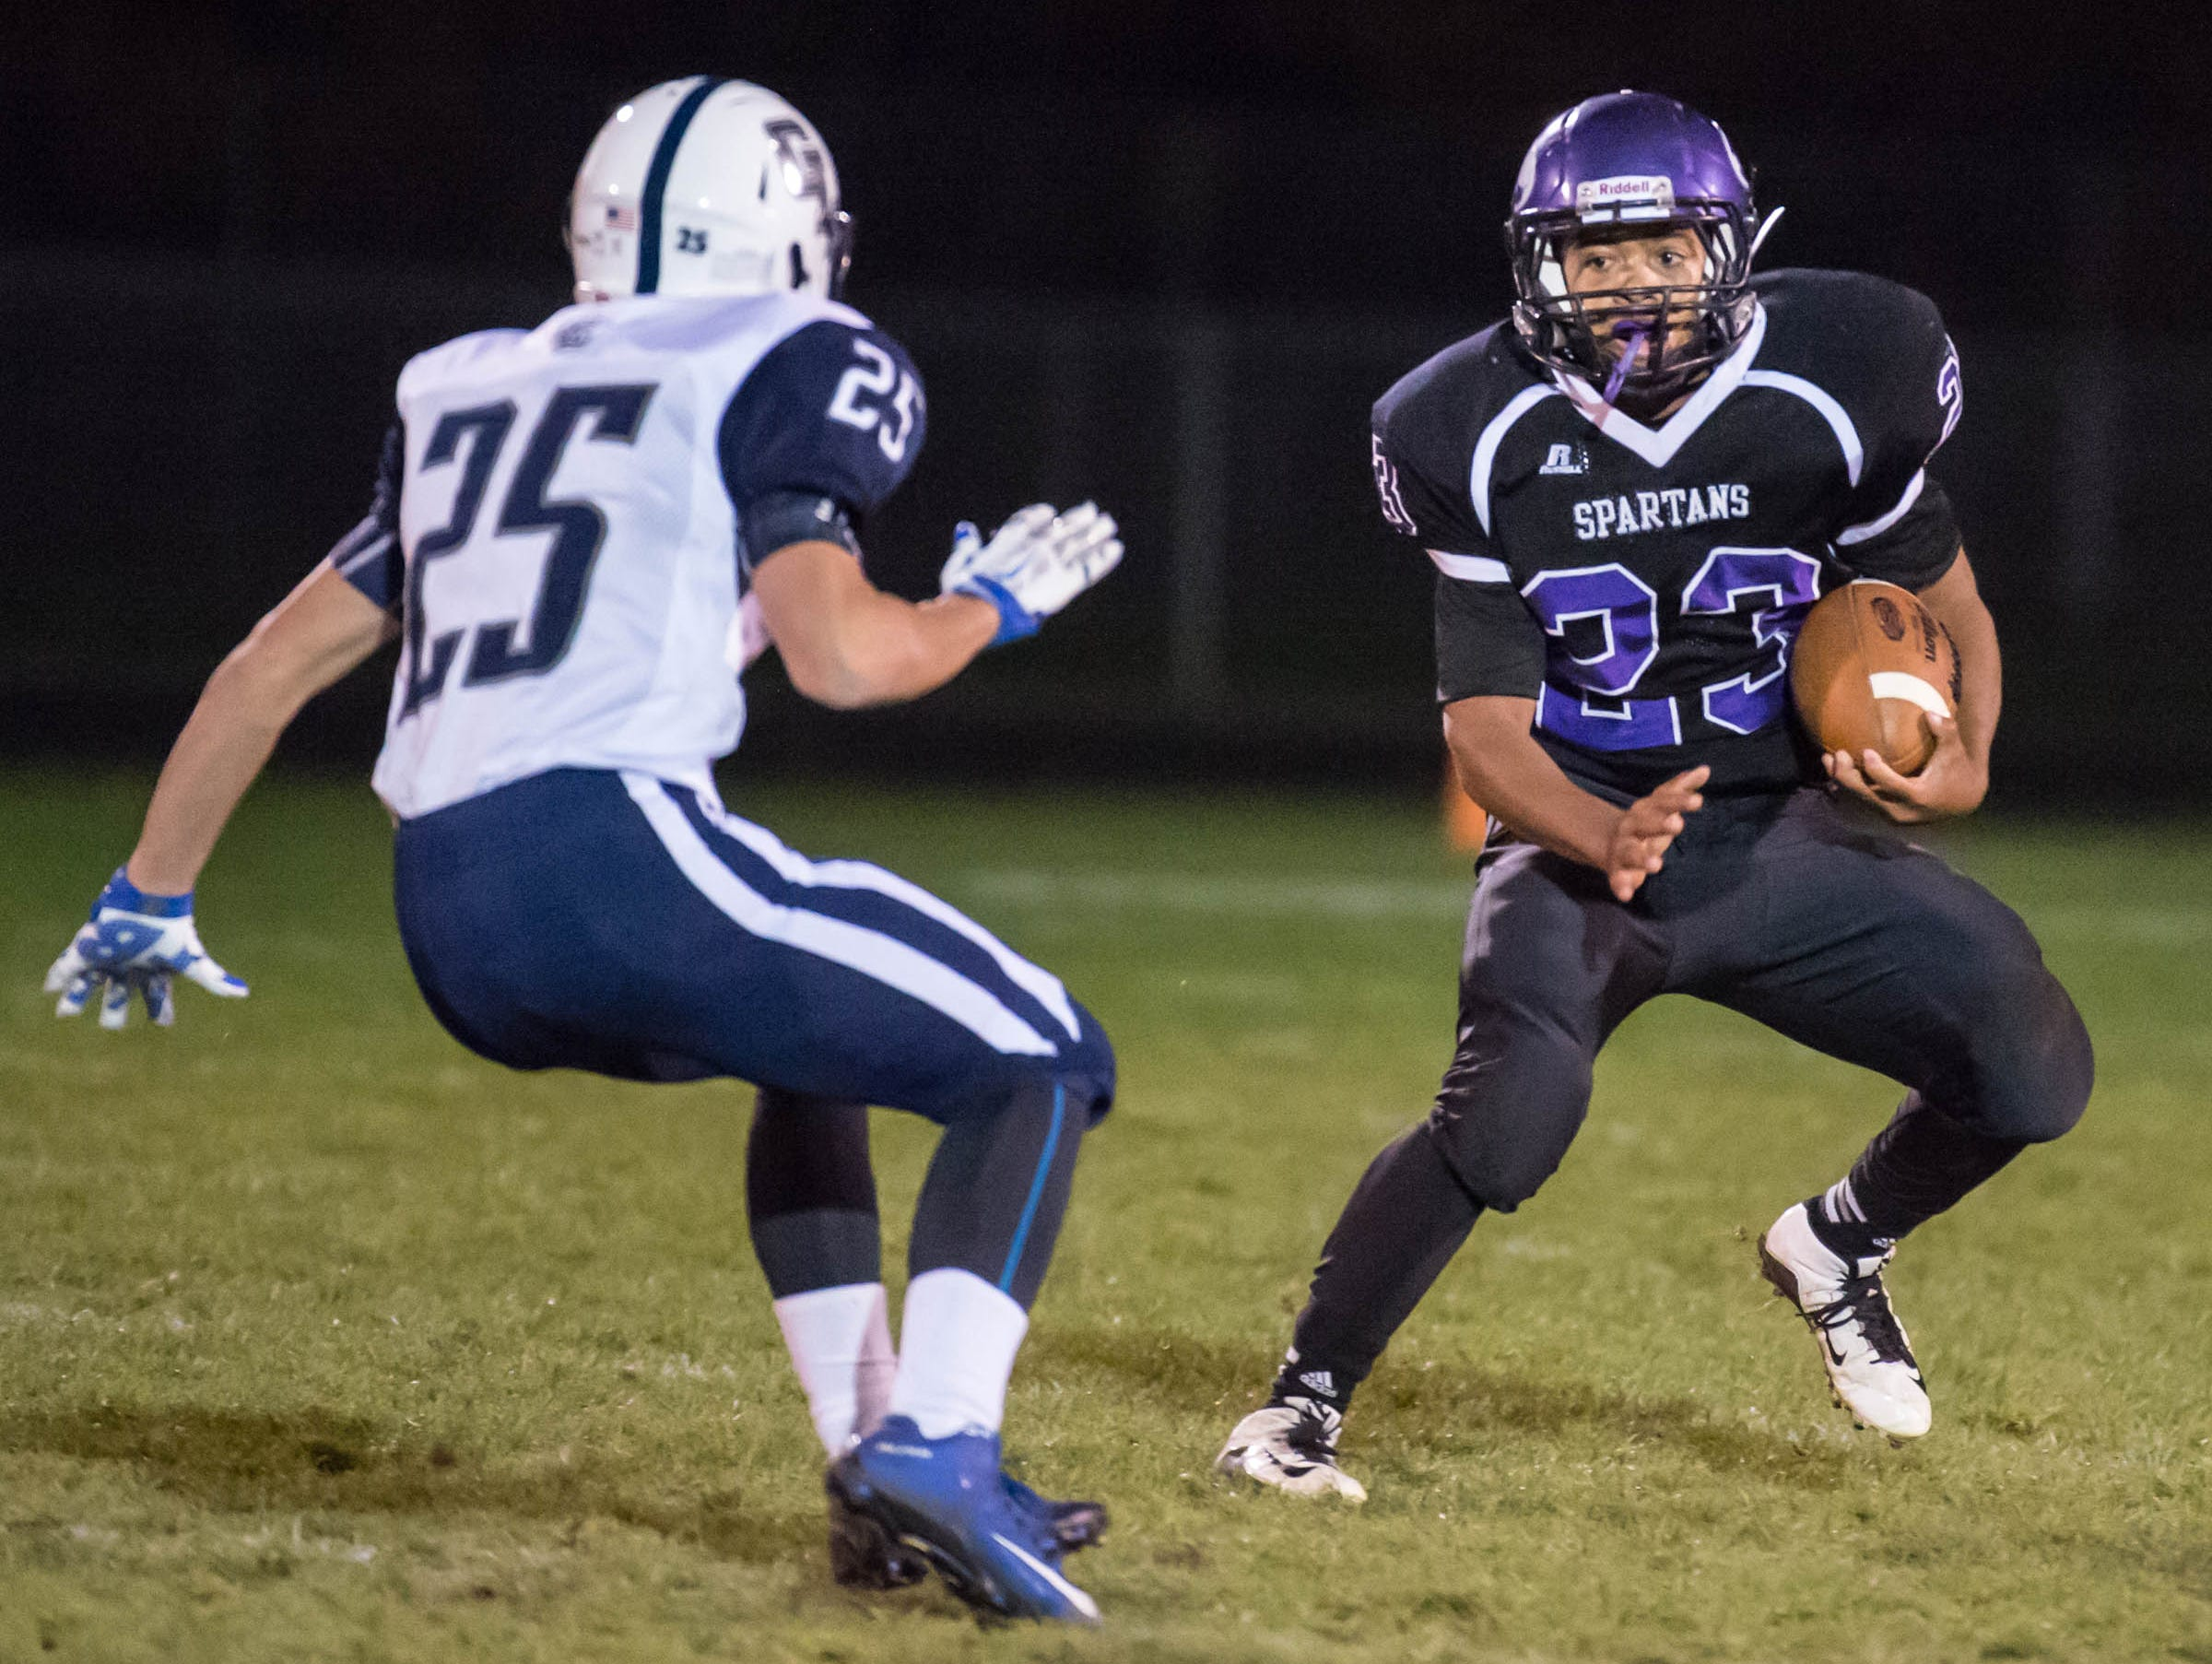 Lakeview's CJ Foster (23) advances the ball.